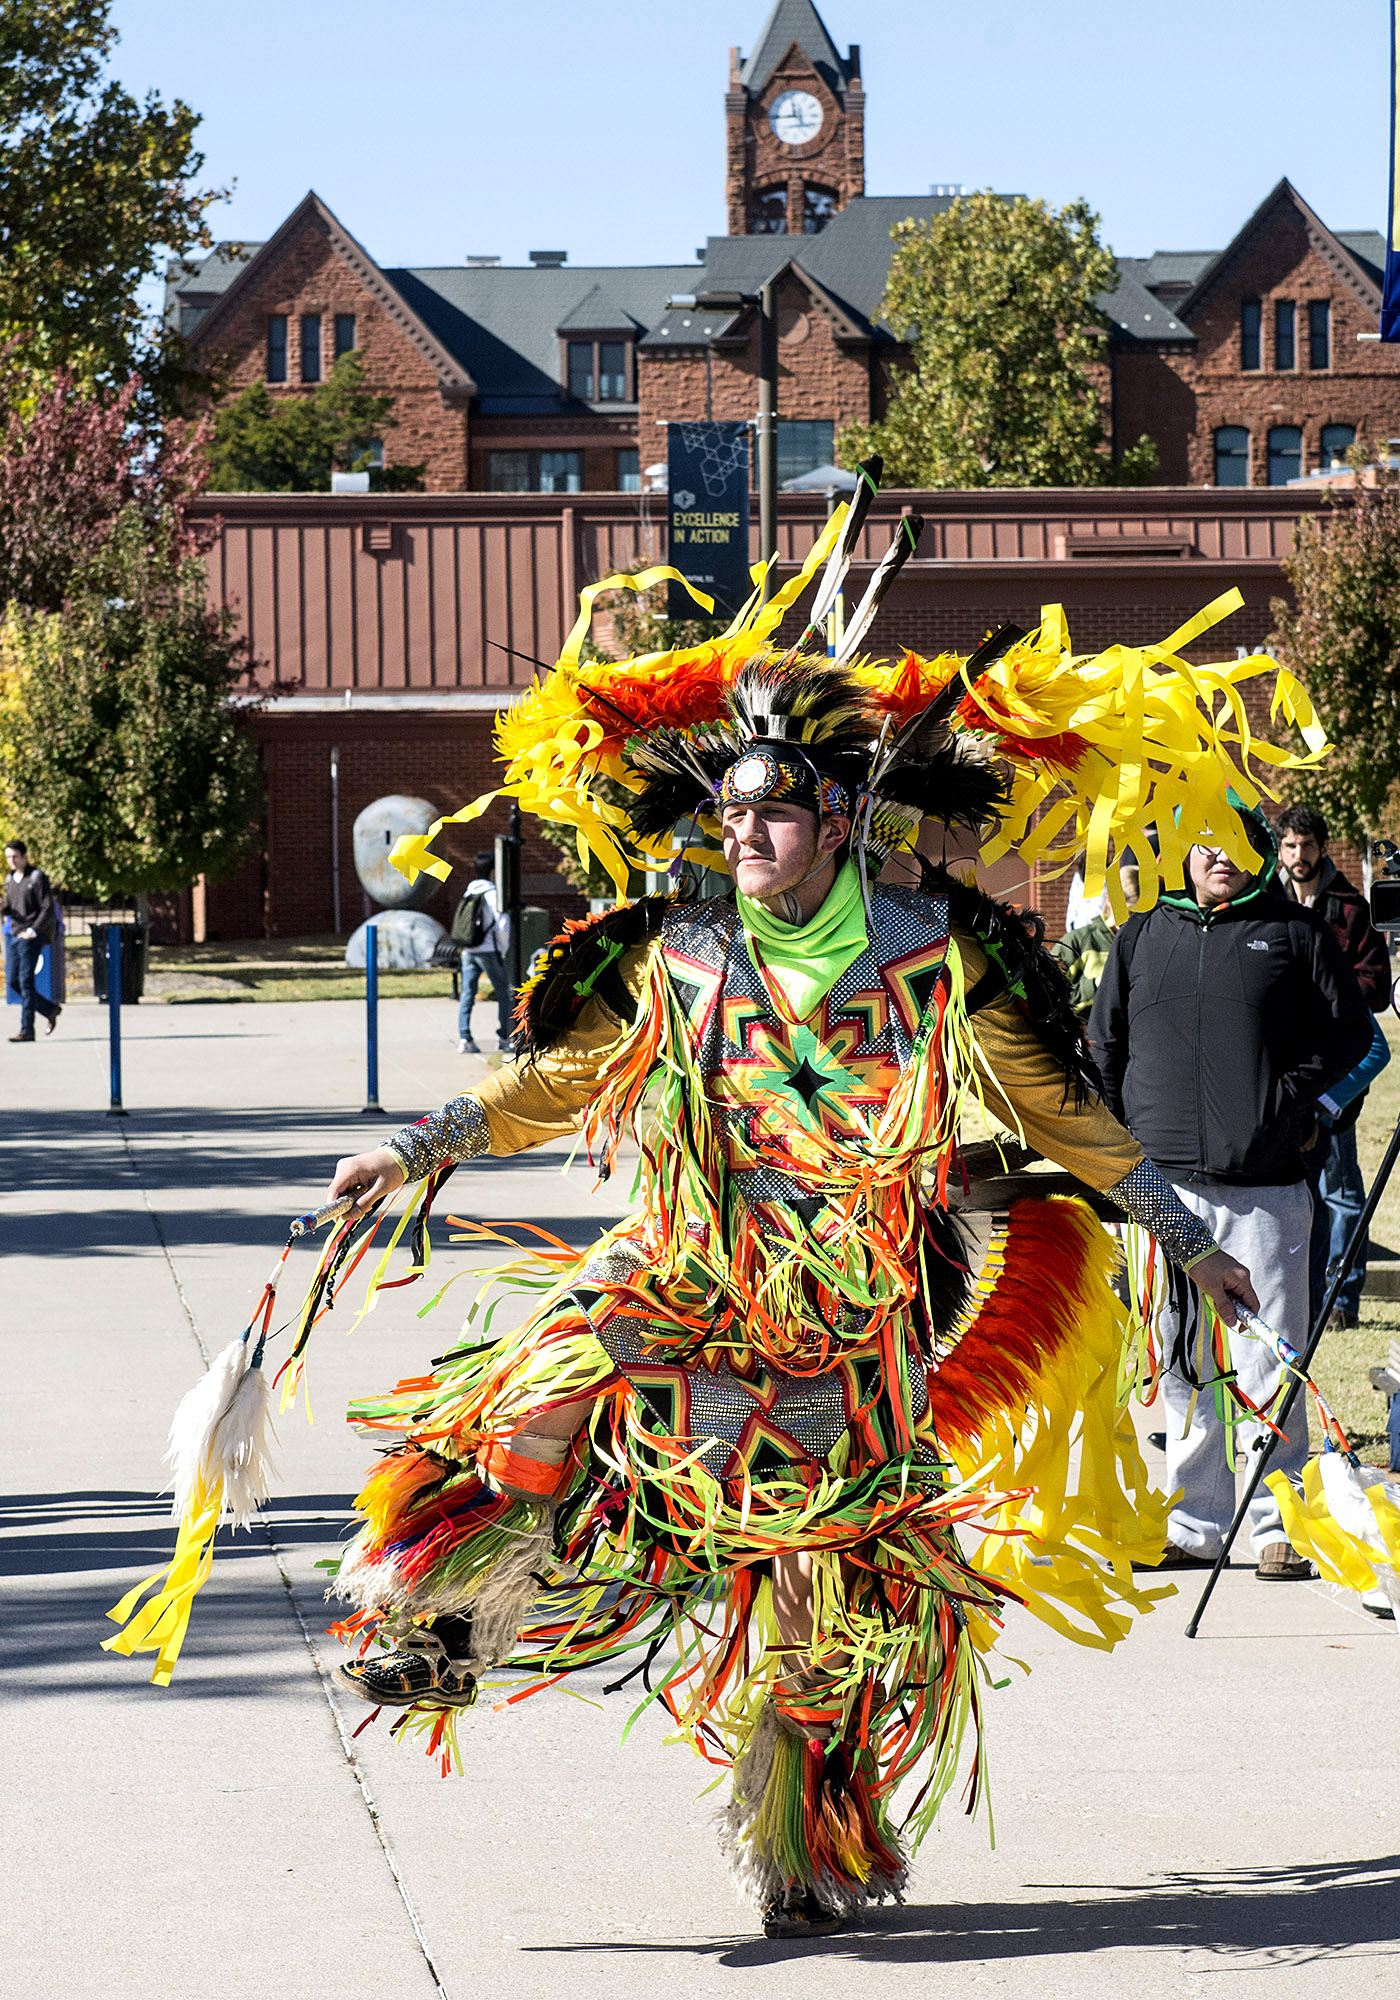 Jared Wahkinney, of Lawton, Okla., and member of the Comanche Nation, performs a traditional dance during the kickoff event for the University of Central Oklahoma's Native American Heritage Month on Thursday, Nov. 7, 2013.